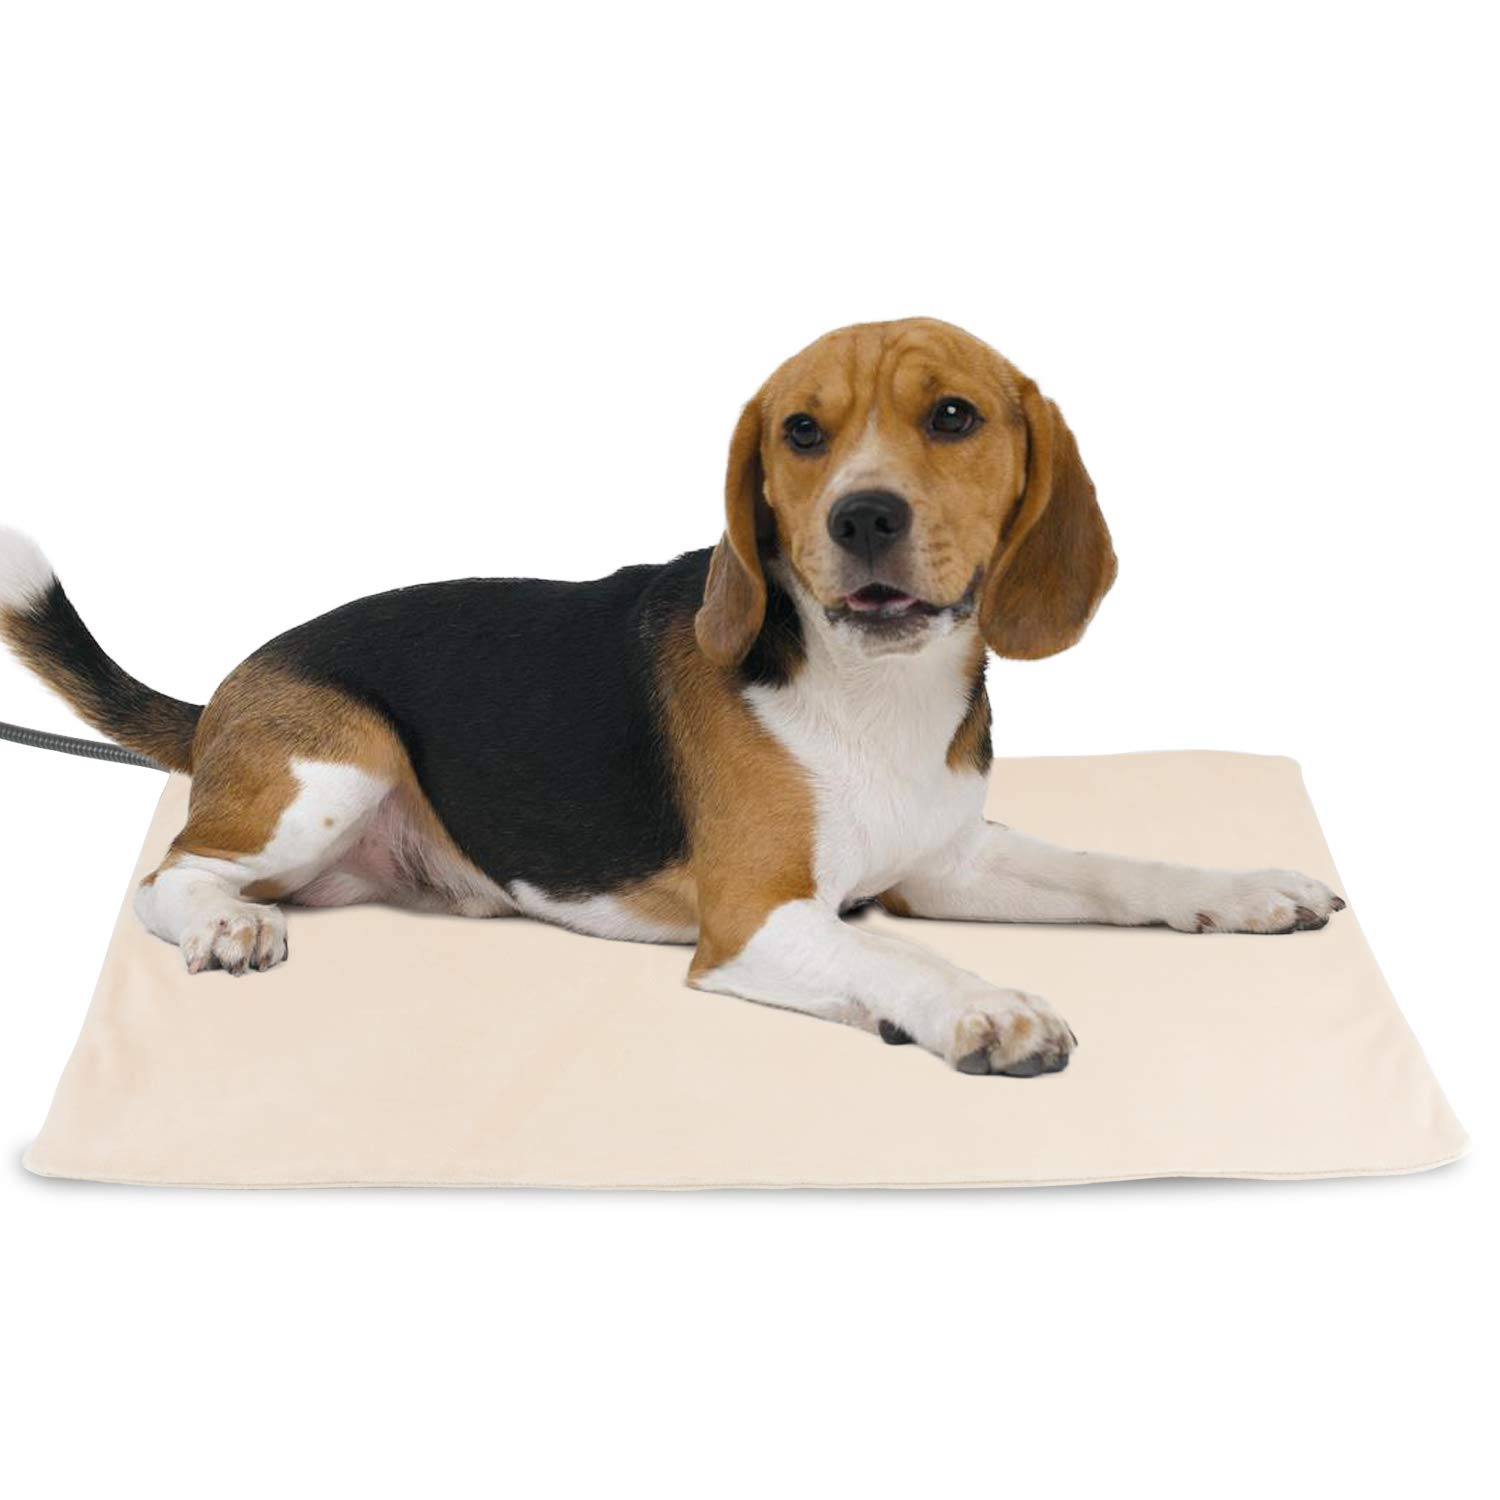 NICREW Pet Heating Pad for Dogs and Cats, Heated Pet Mat with Steel-Wrapped Cord and Soft Fleece Cover, 27.5 x 17.5 Inch, 50 Watts by NICREW